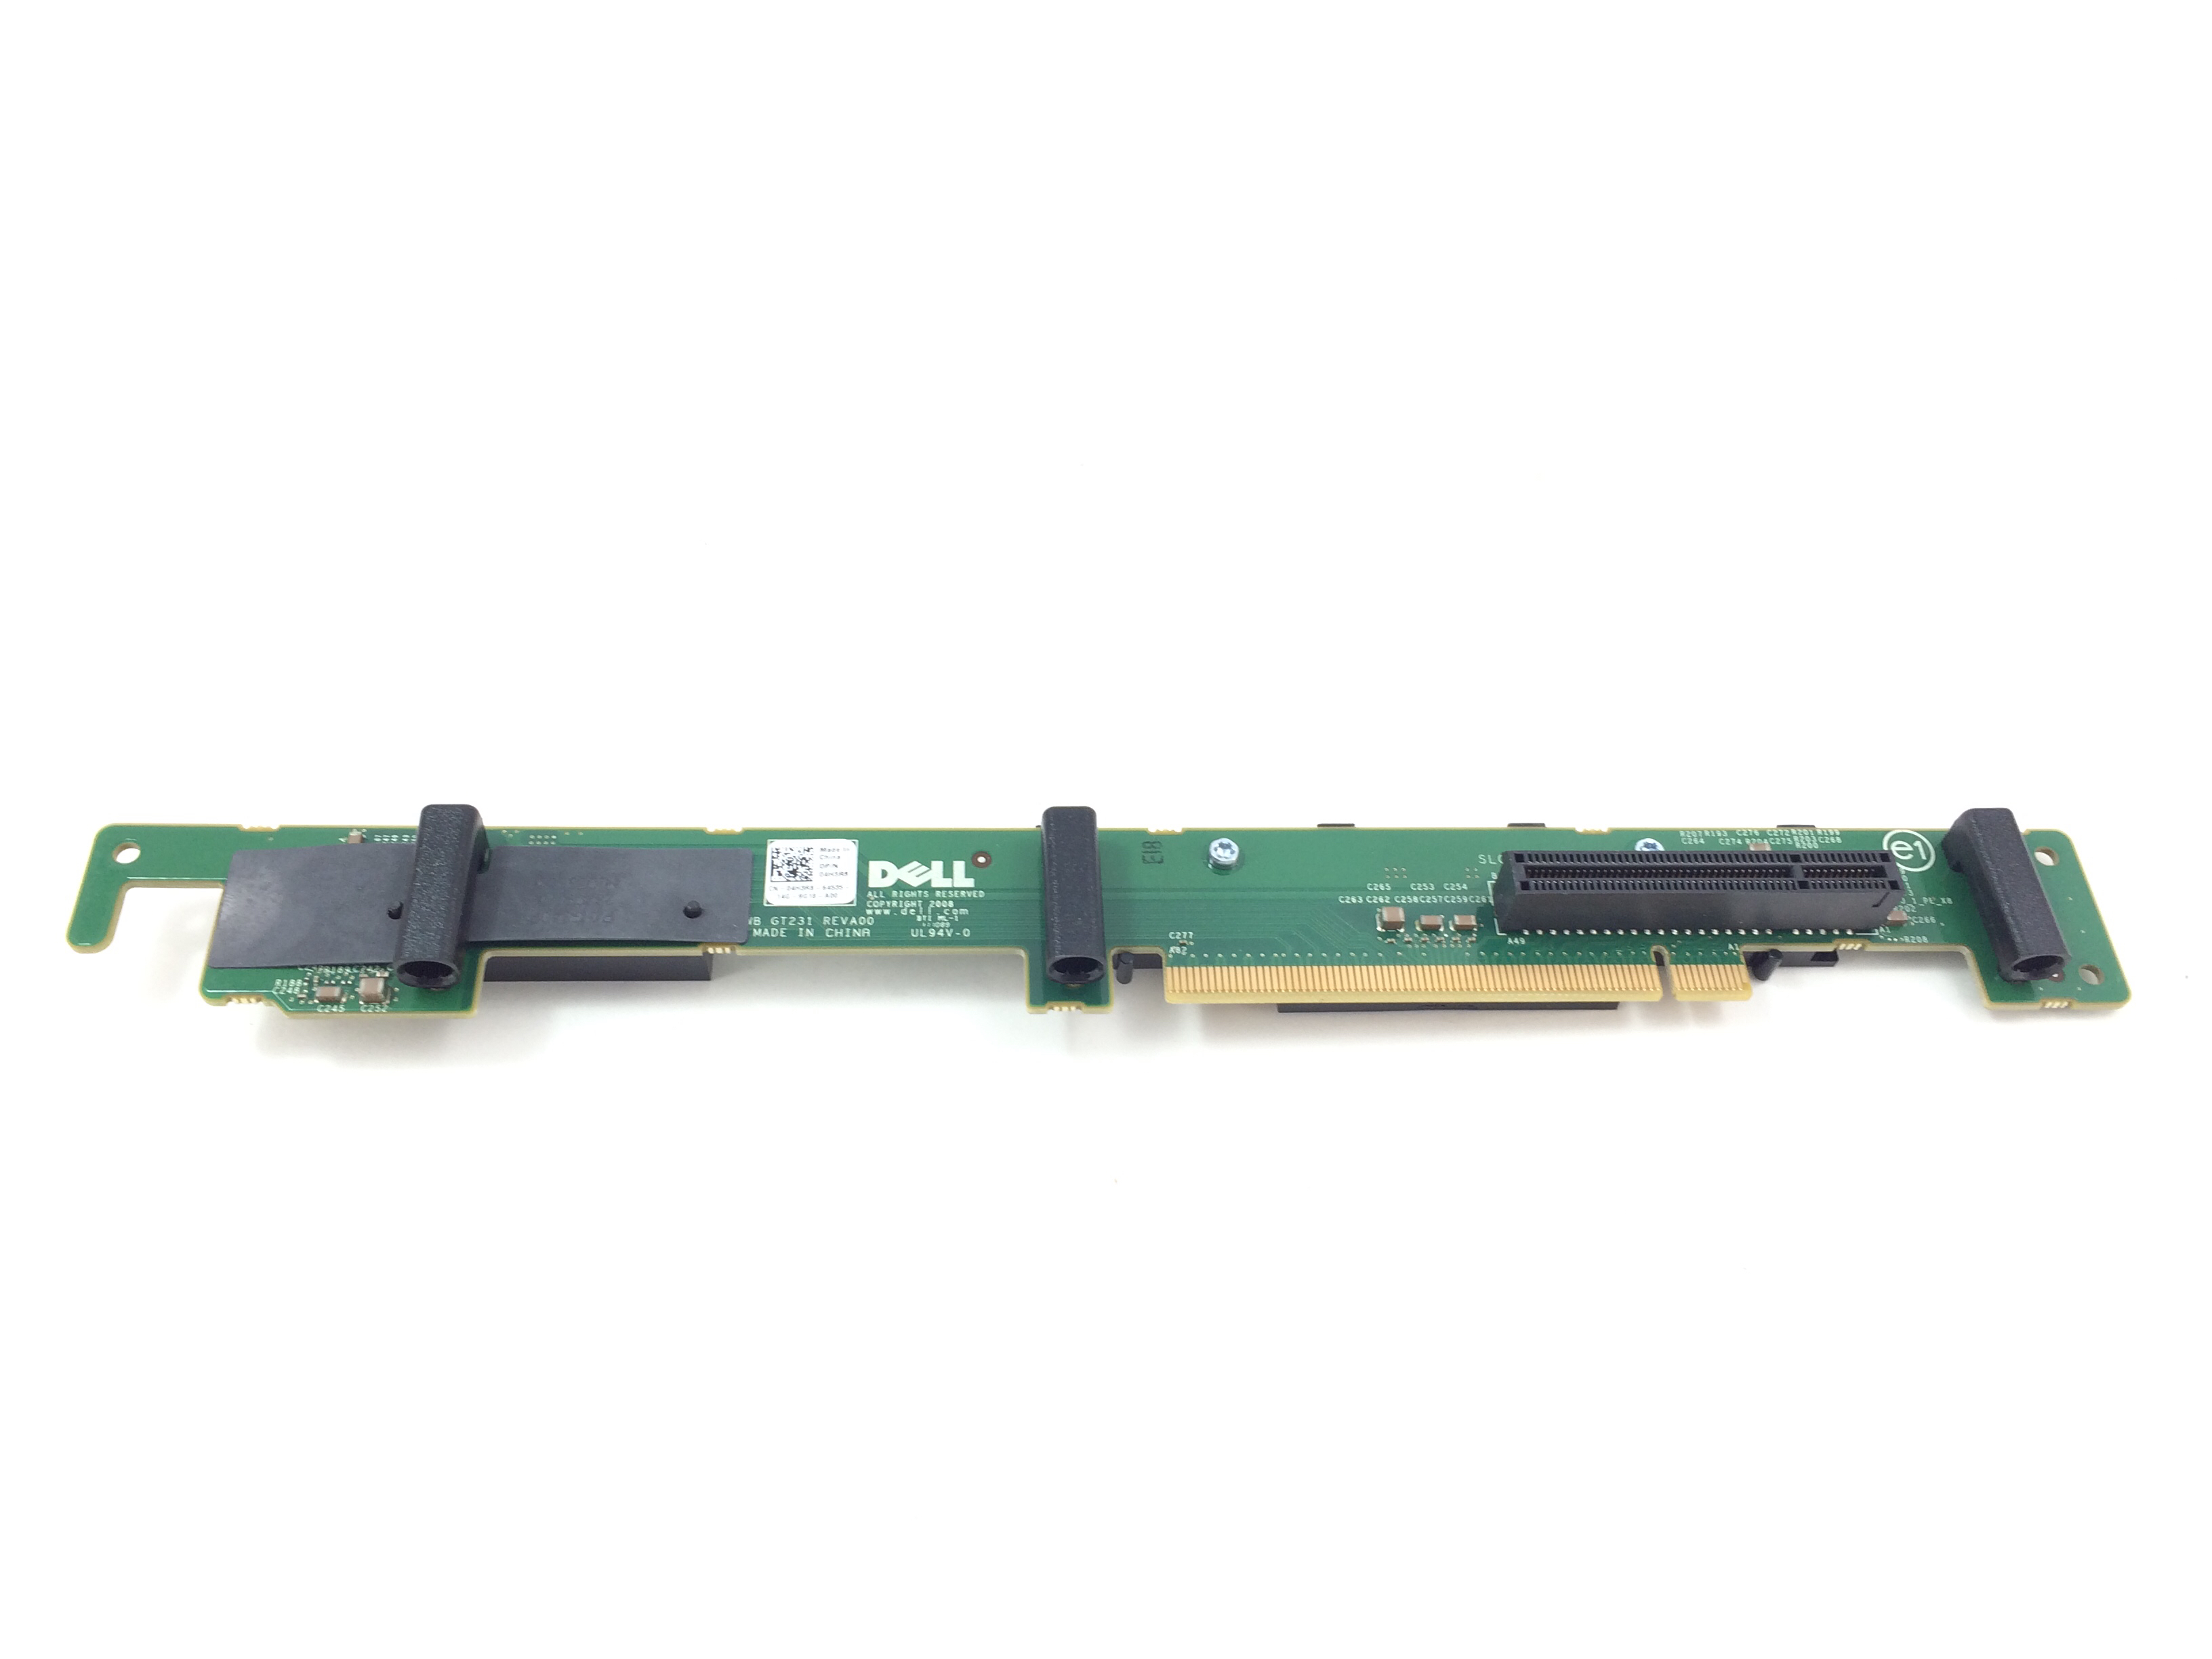 Dell PowerEdge R610 Long PCI-E Riser Card (4H3R8)